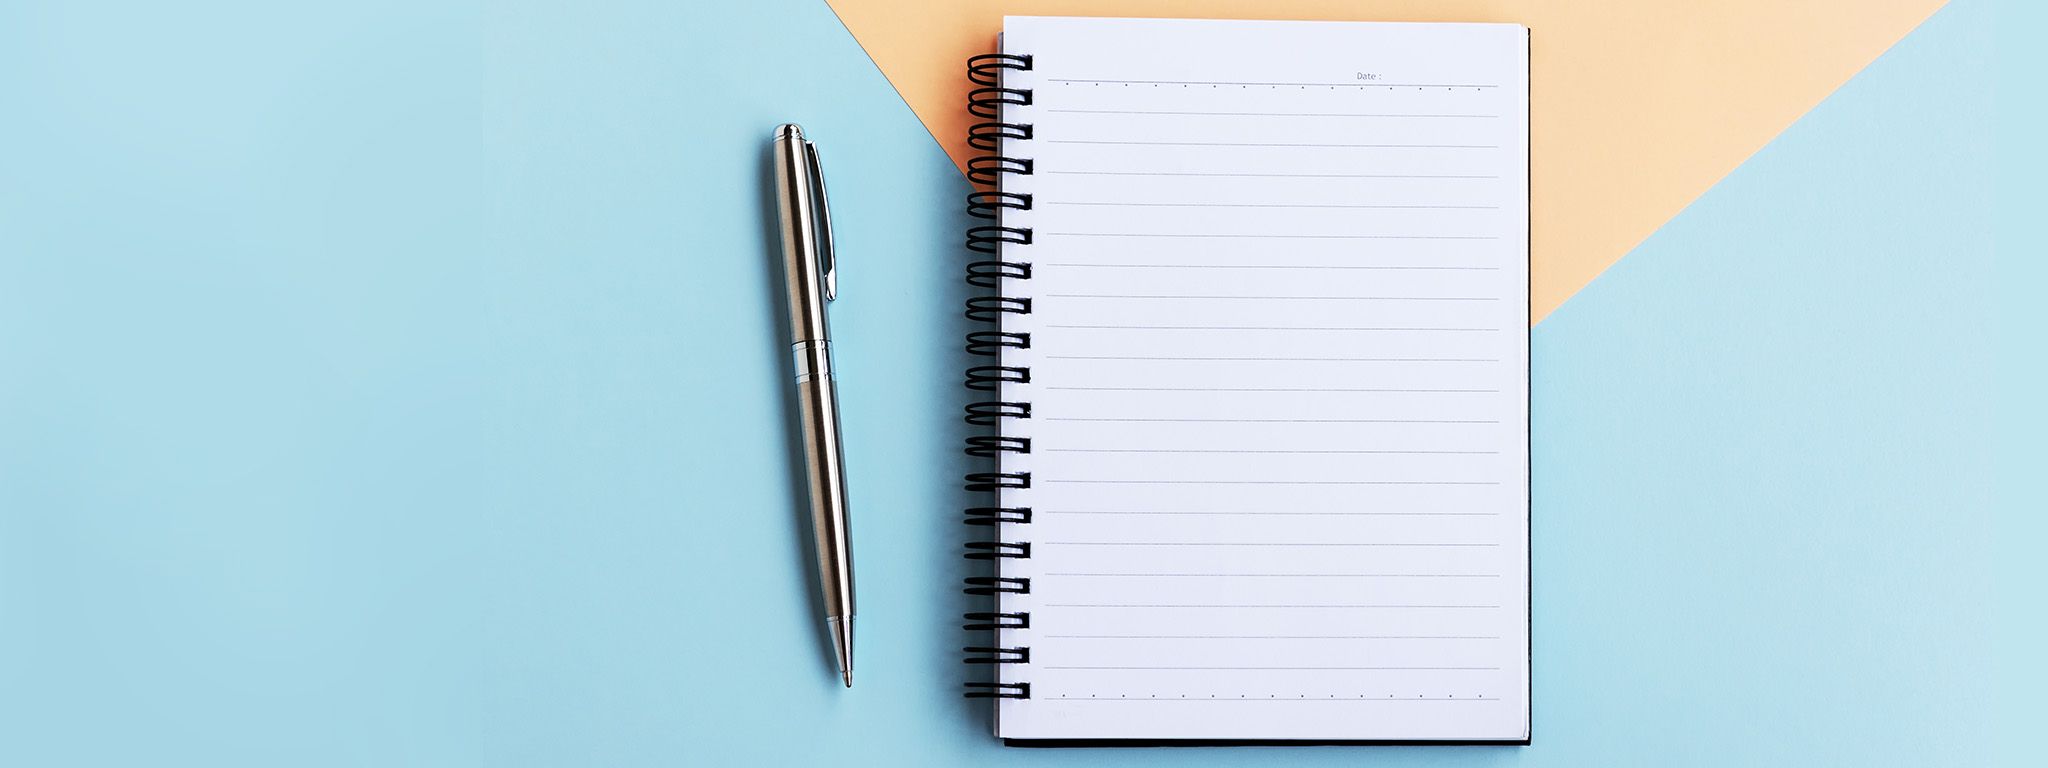 A pen and notepad